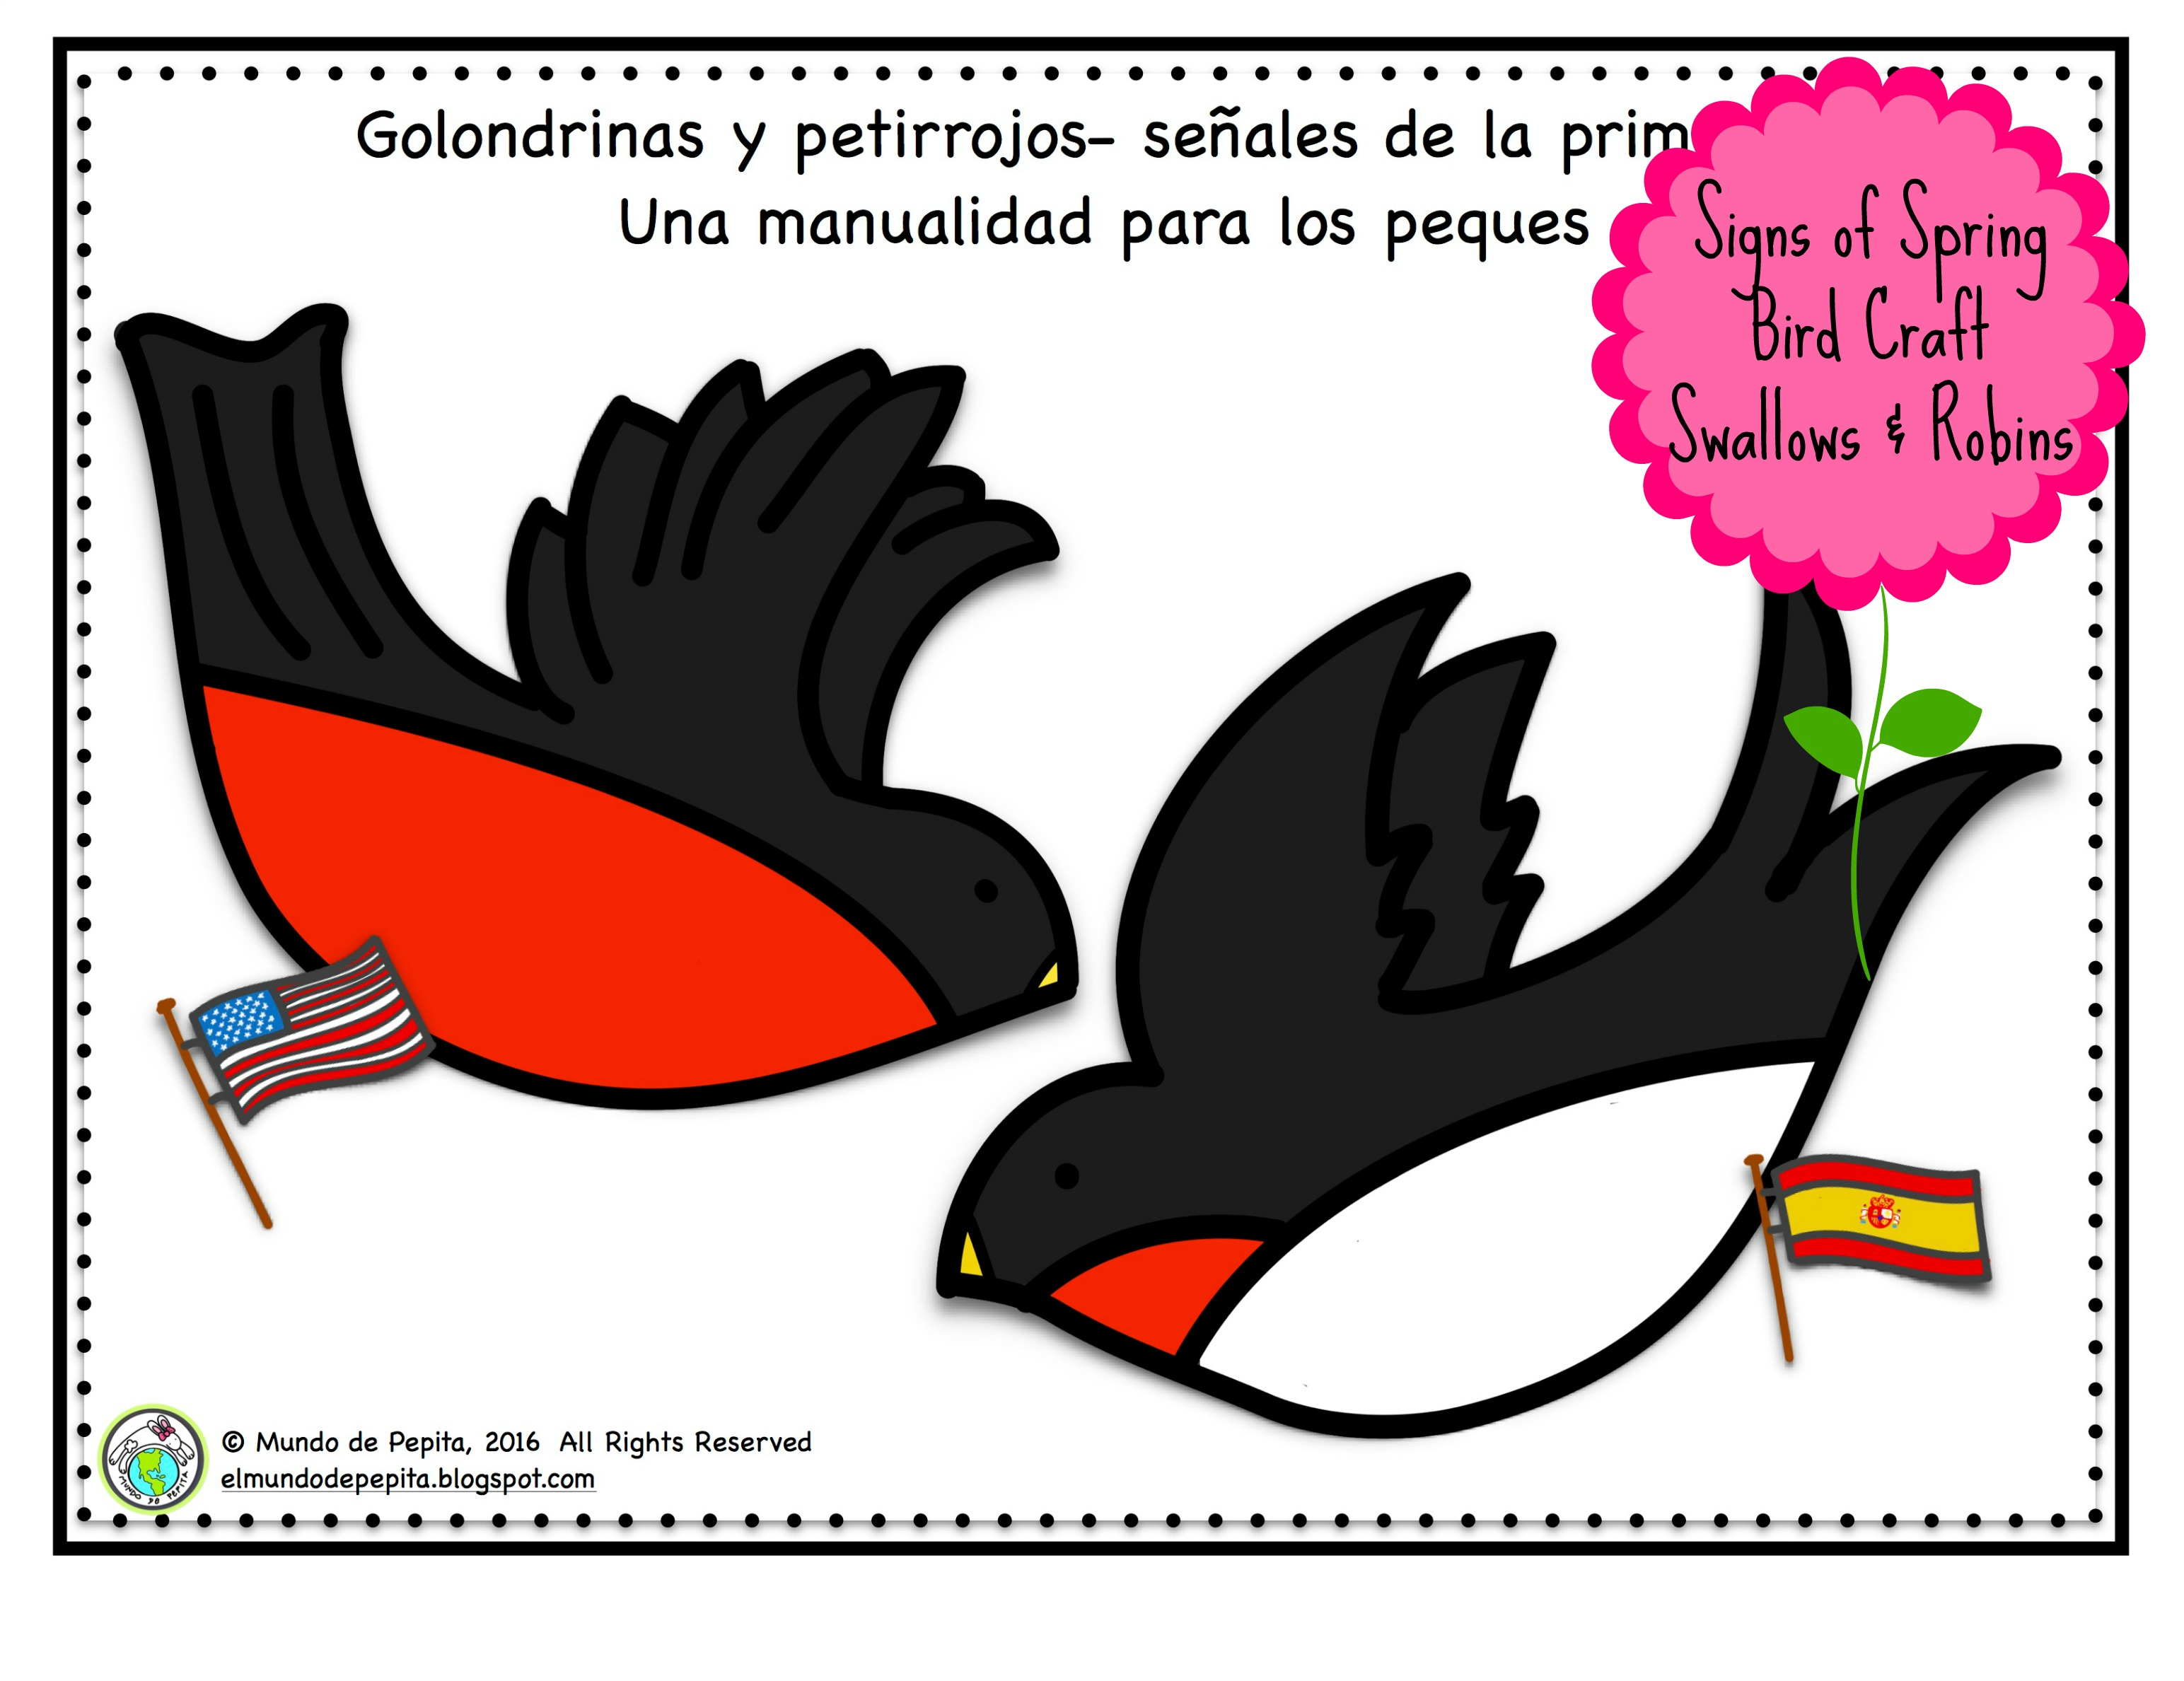 Spanish Spring Craft: Swallows and Robins - Multicultural Kid Blogs